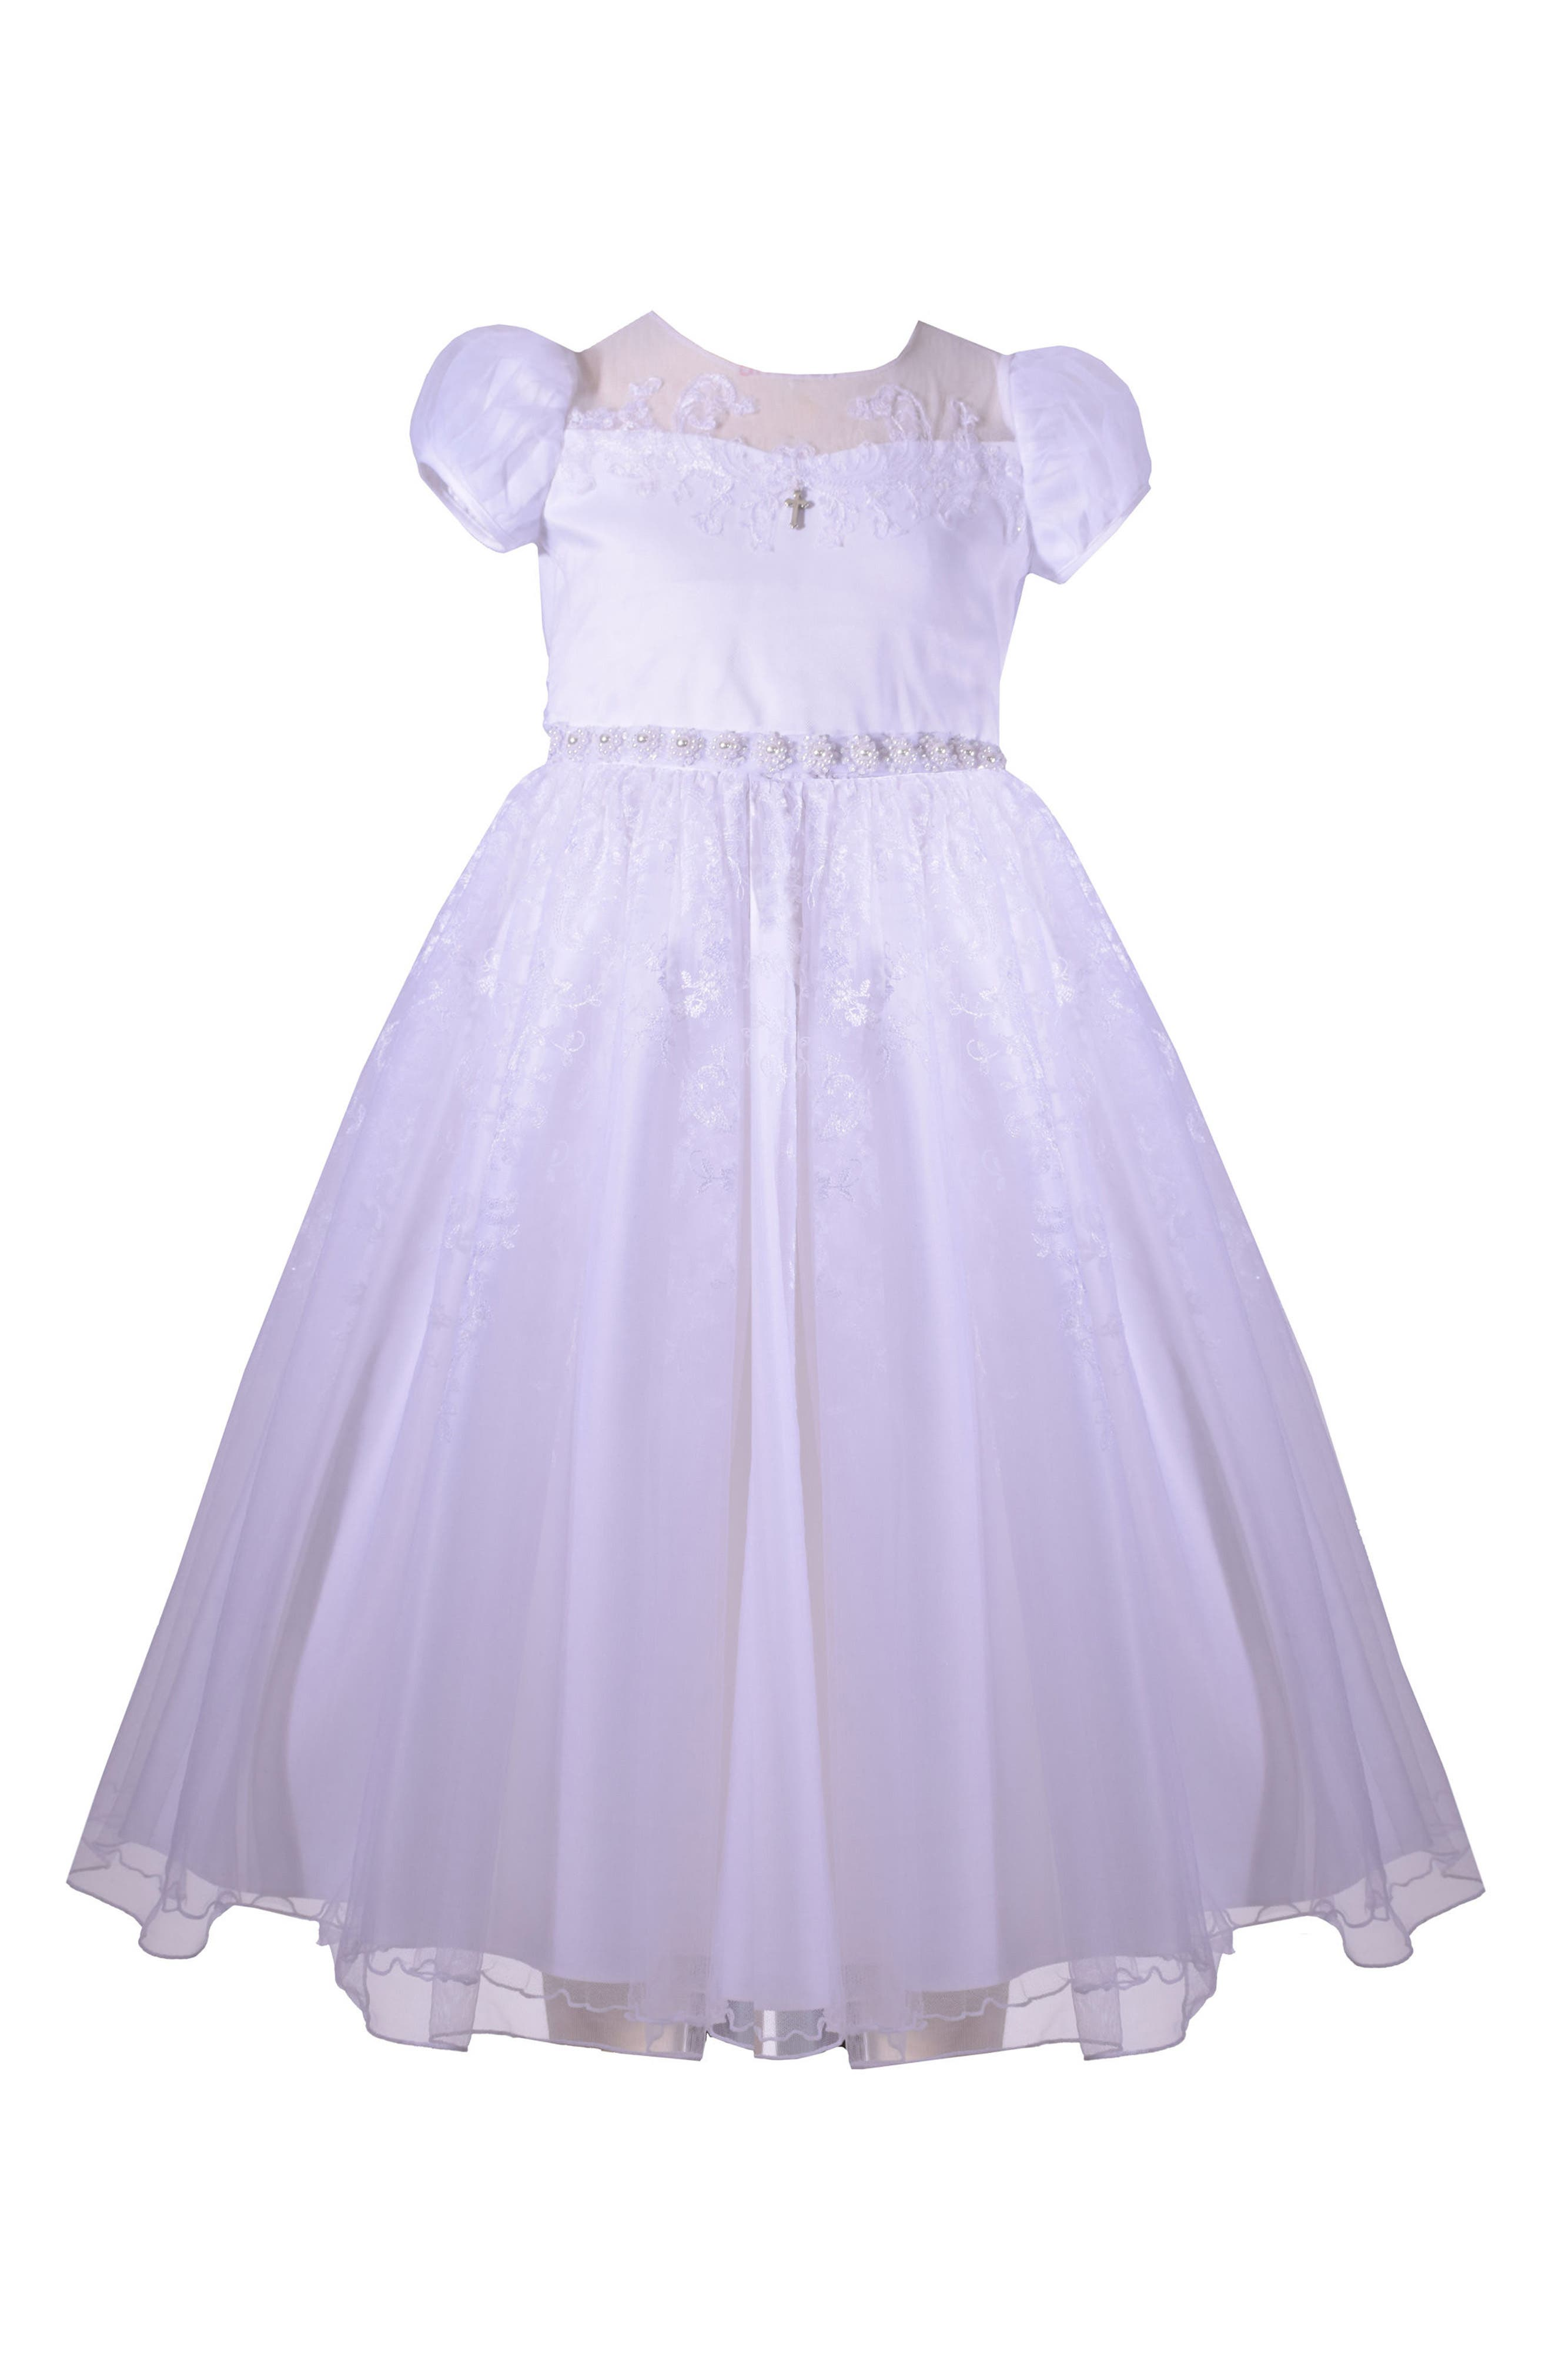 Main Image - Iris & Ivy Puff Sleeve First Communion Dress (Little Girls & Big Girls)